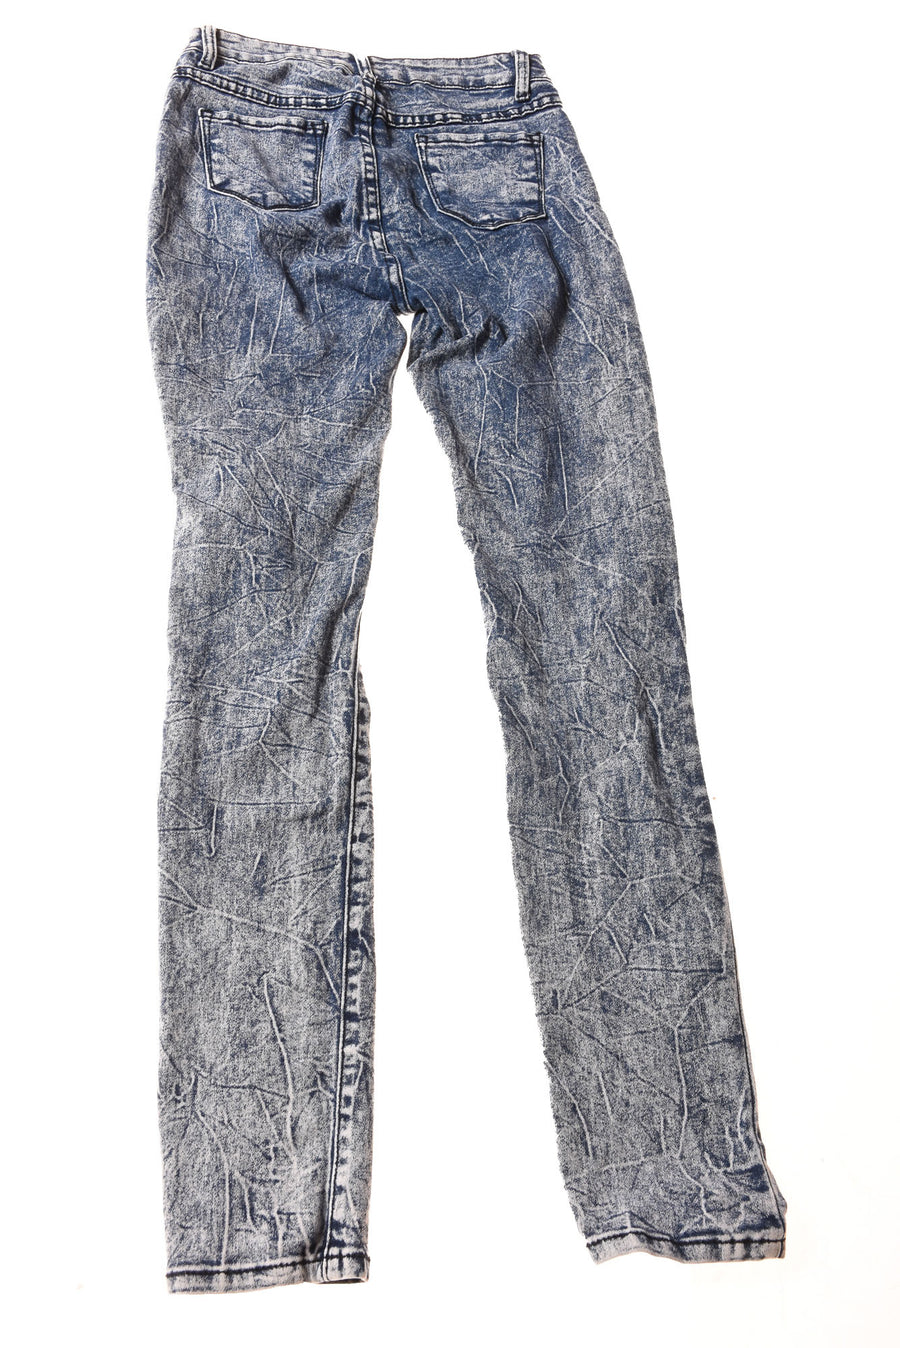 USED Blue Connection Women's Jeans 1/2 Blue